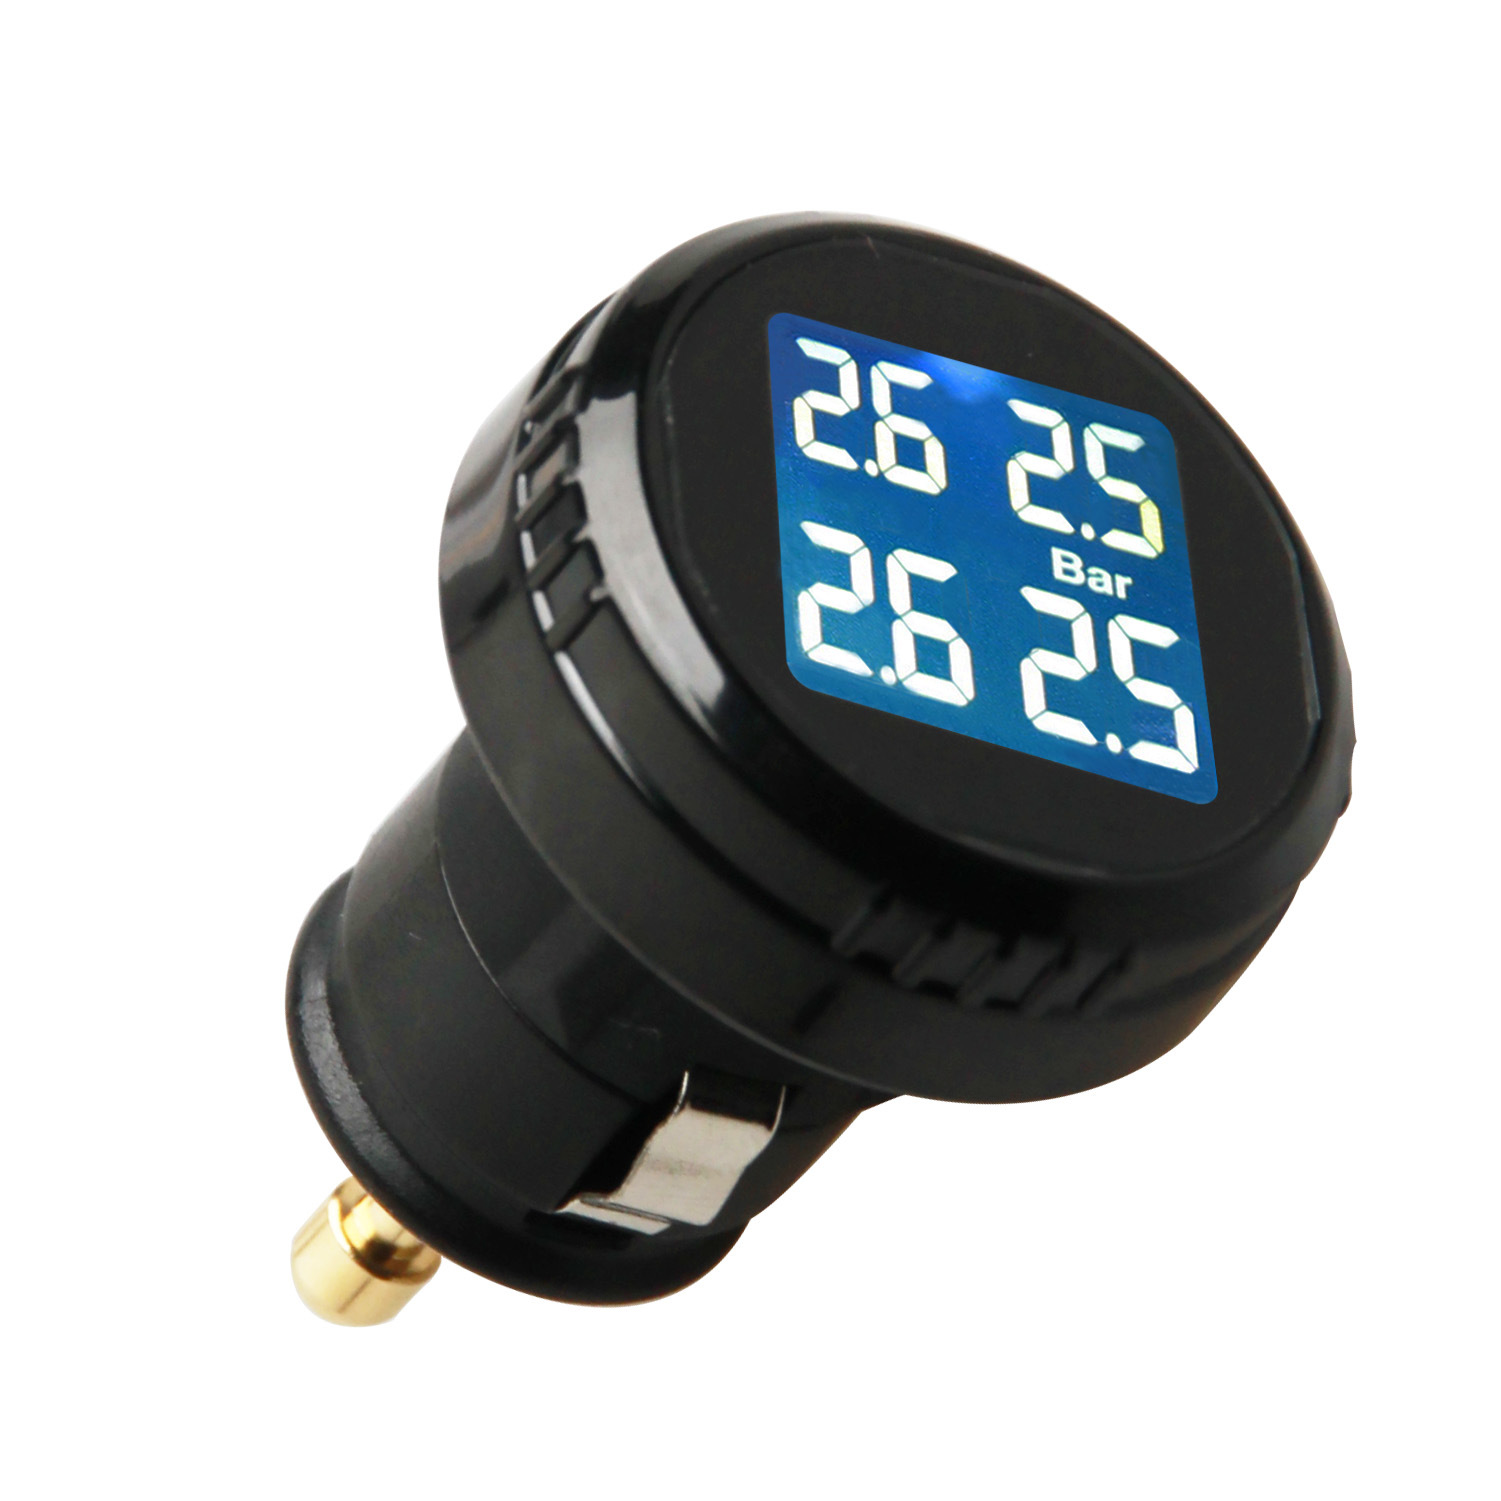 TPMS Bluetooth with 4 External Sensors